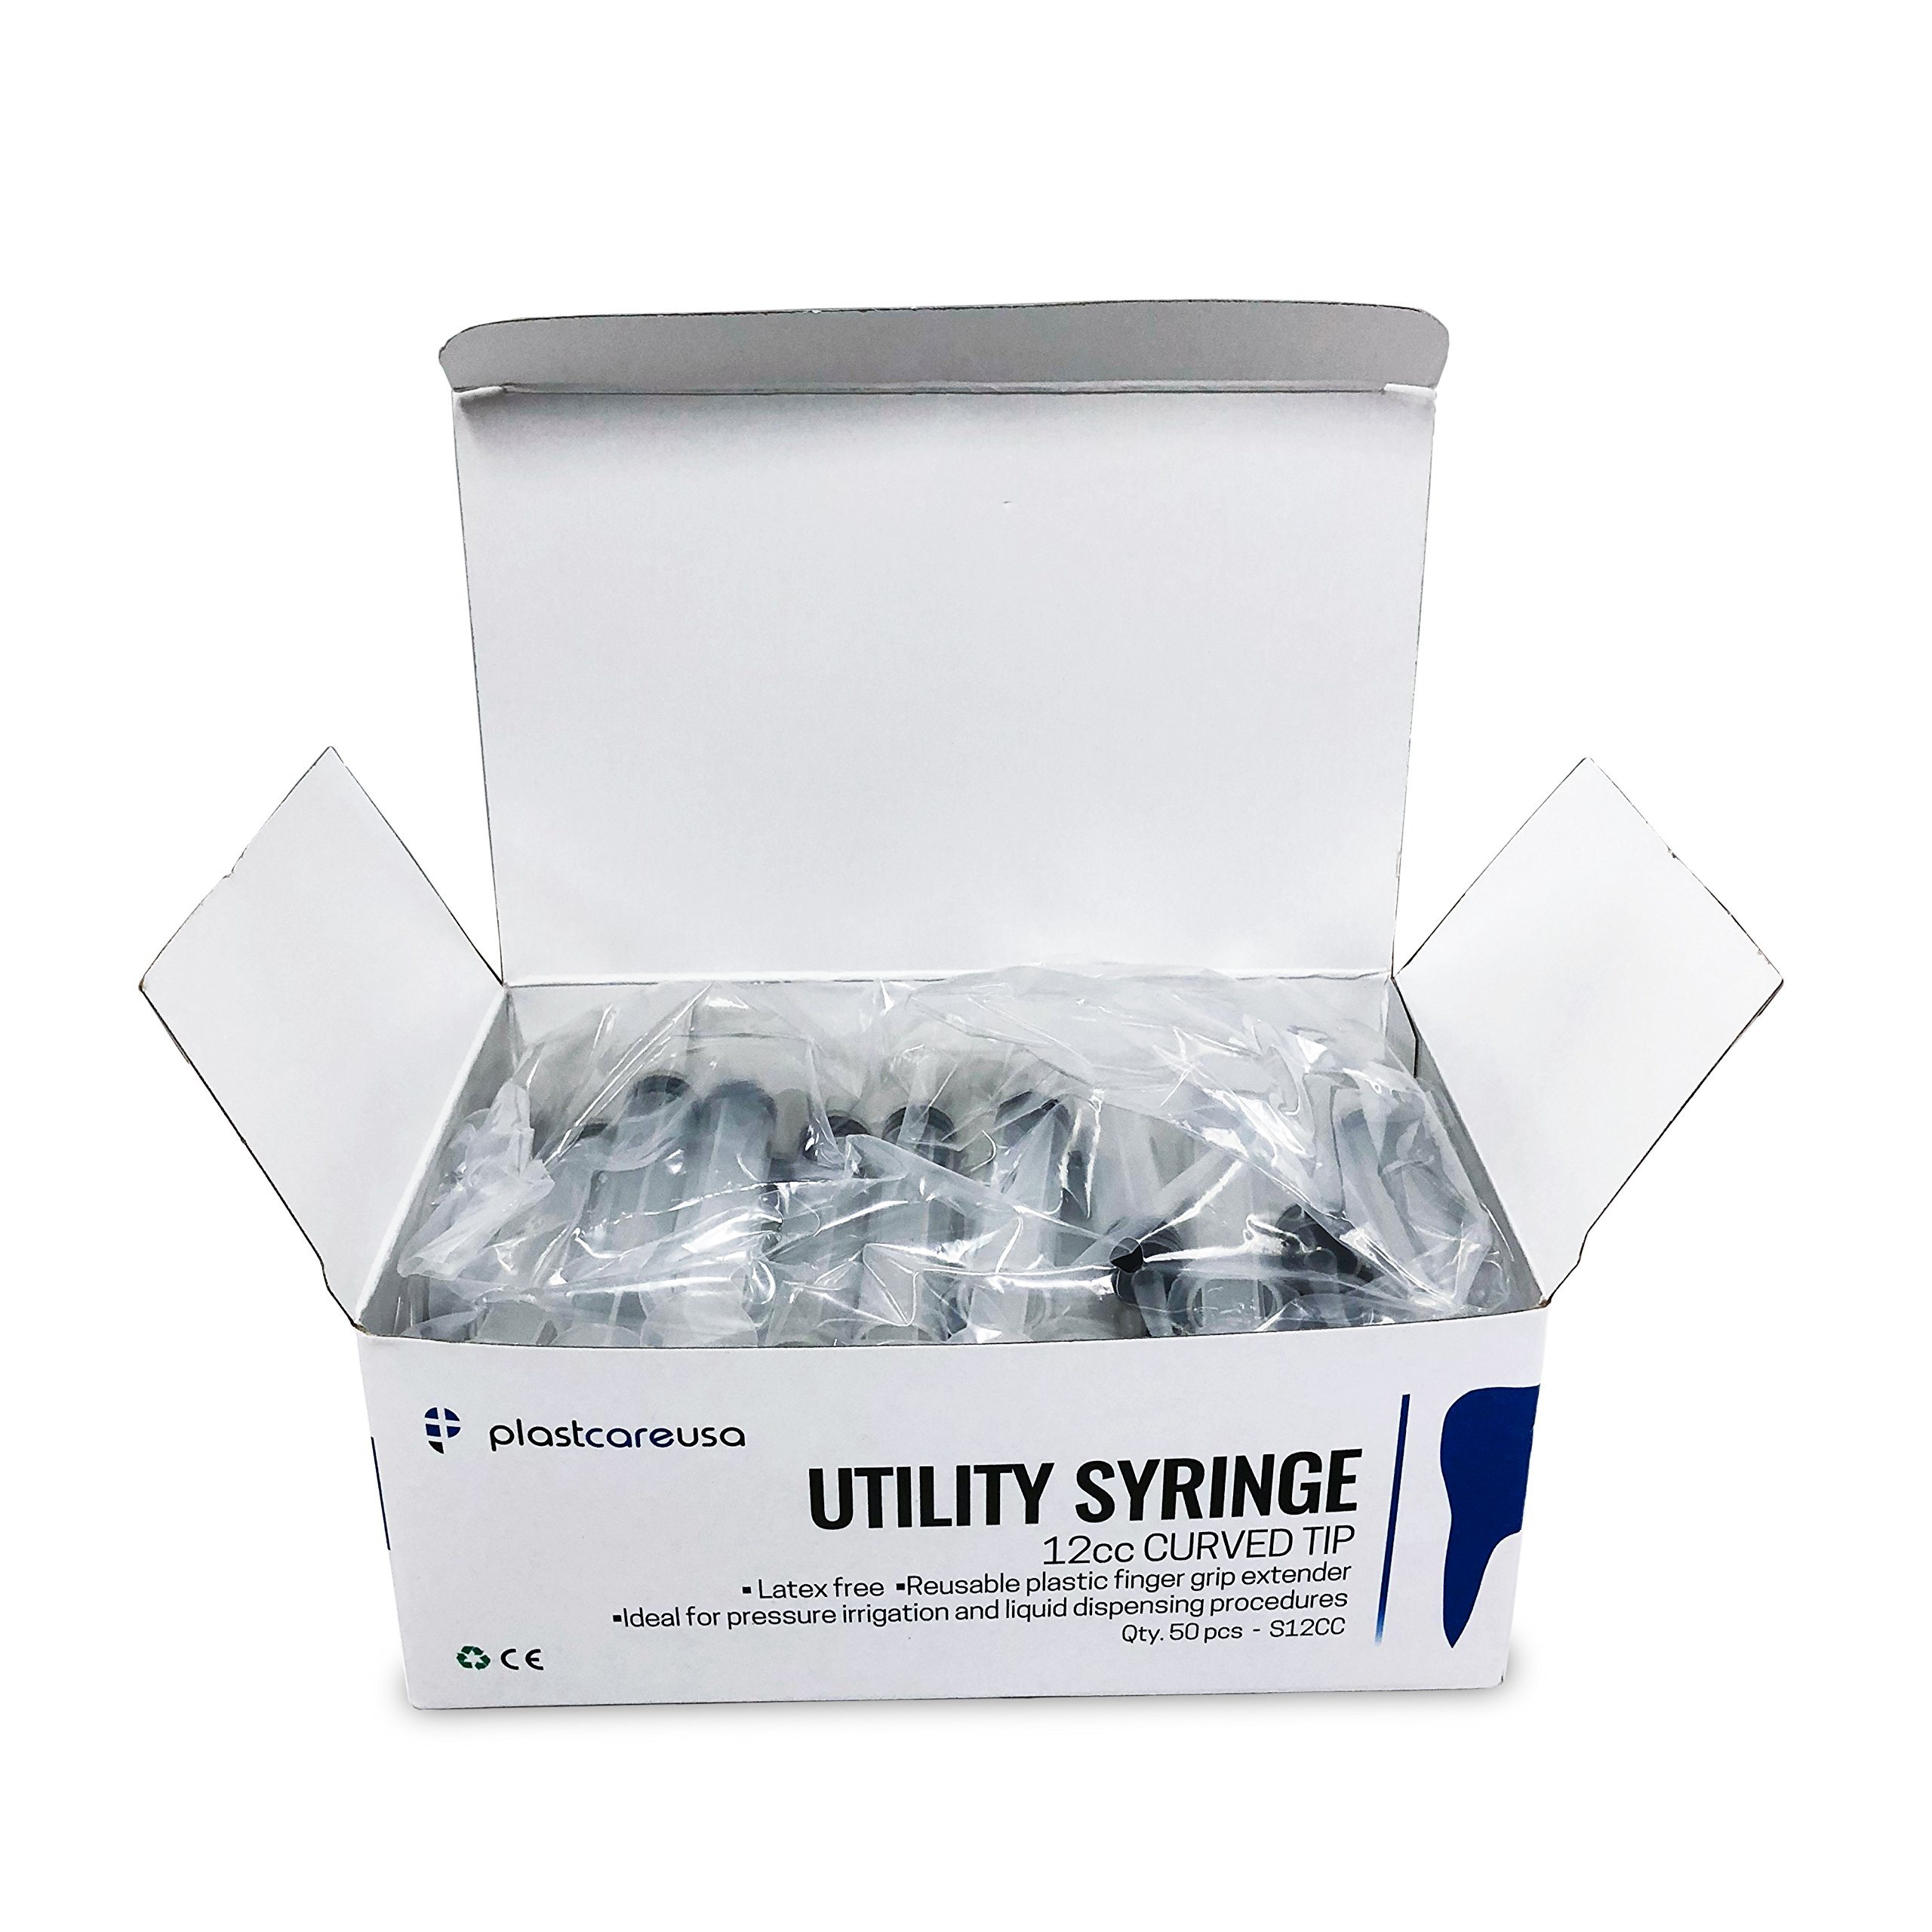 Box of 50 Curved Tip 12cc Irrigation Syringes Disposable Dental Utility